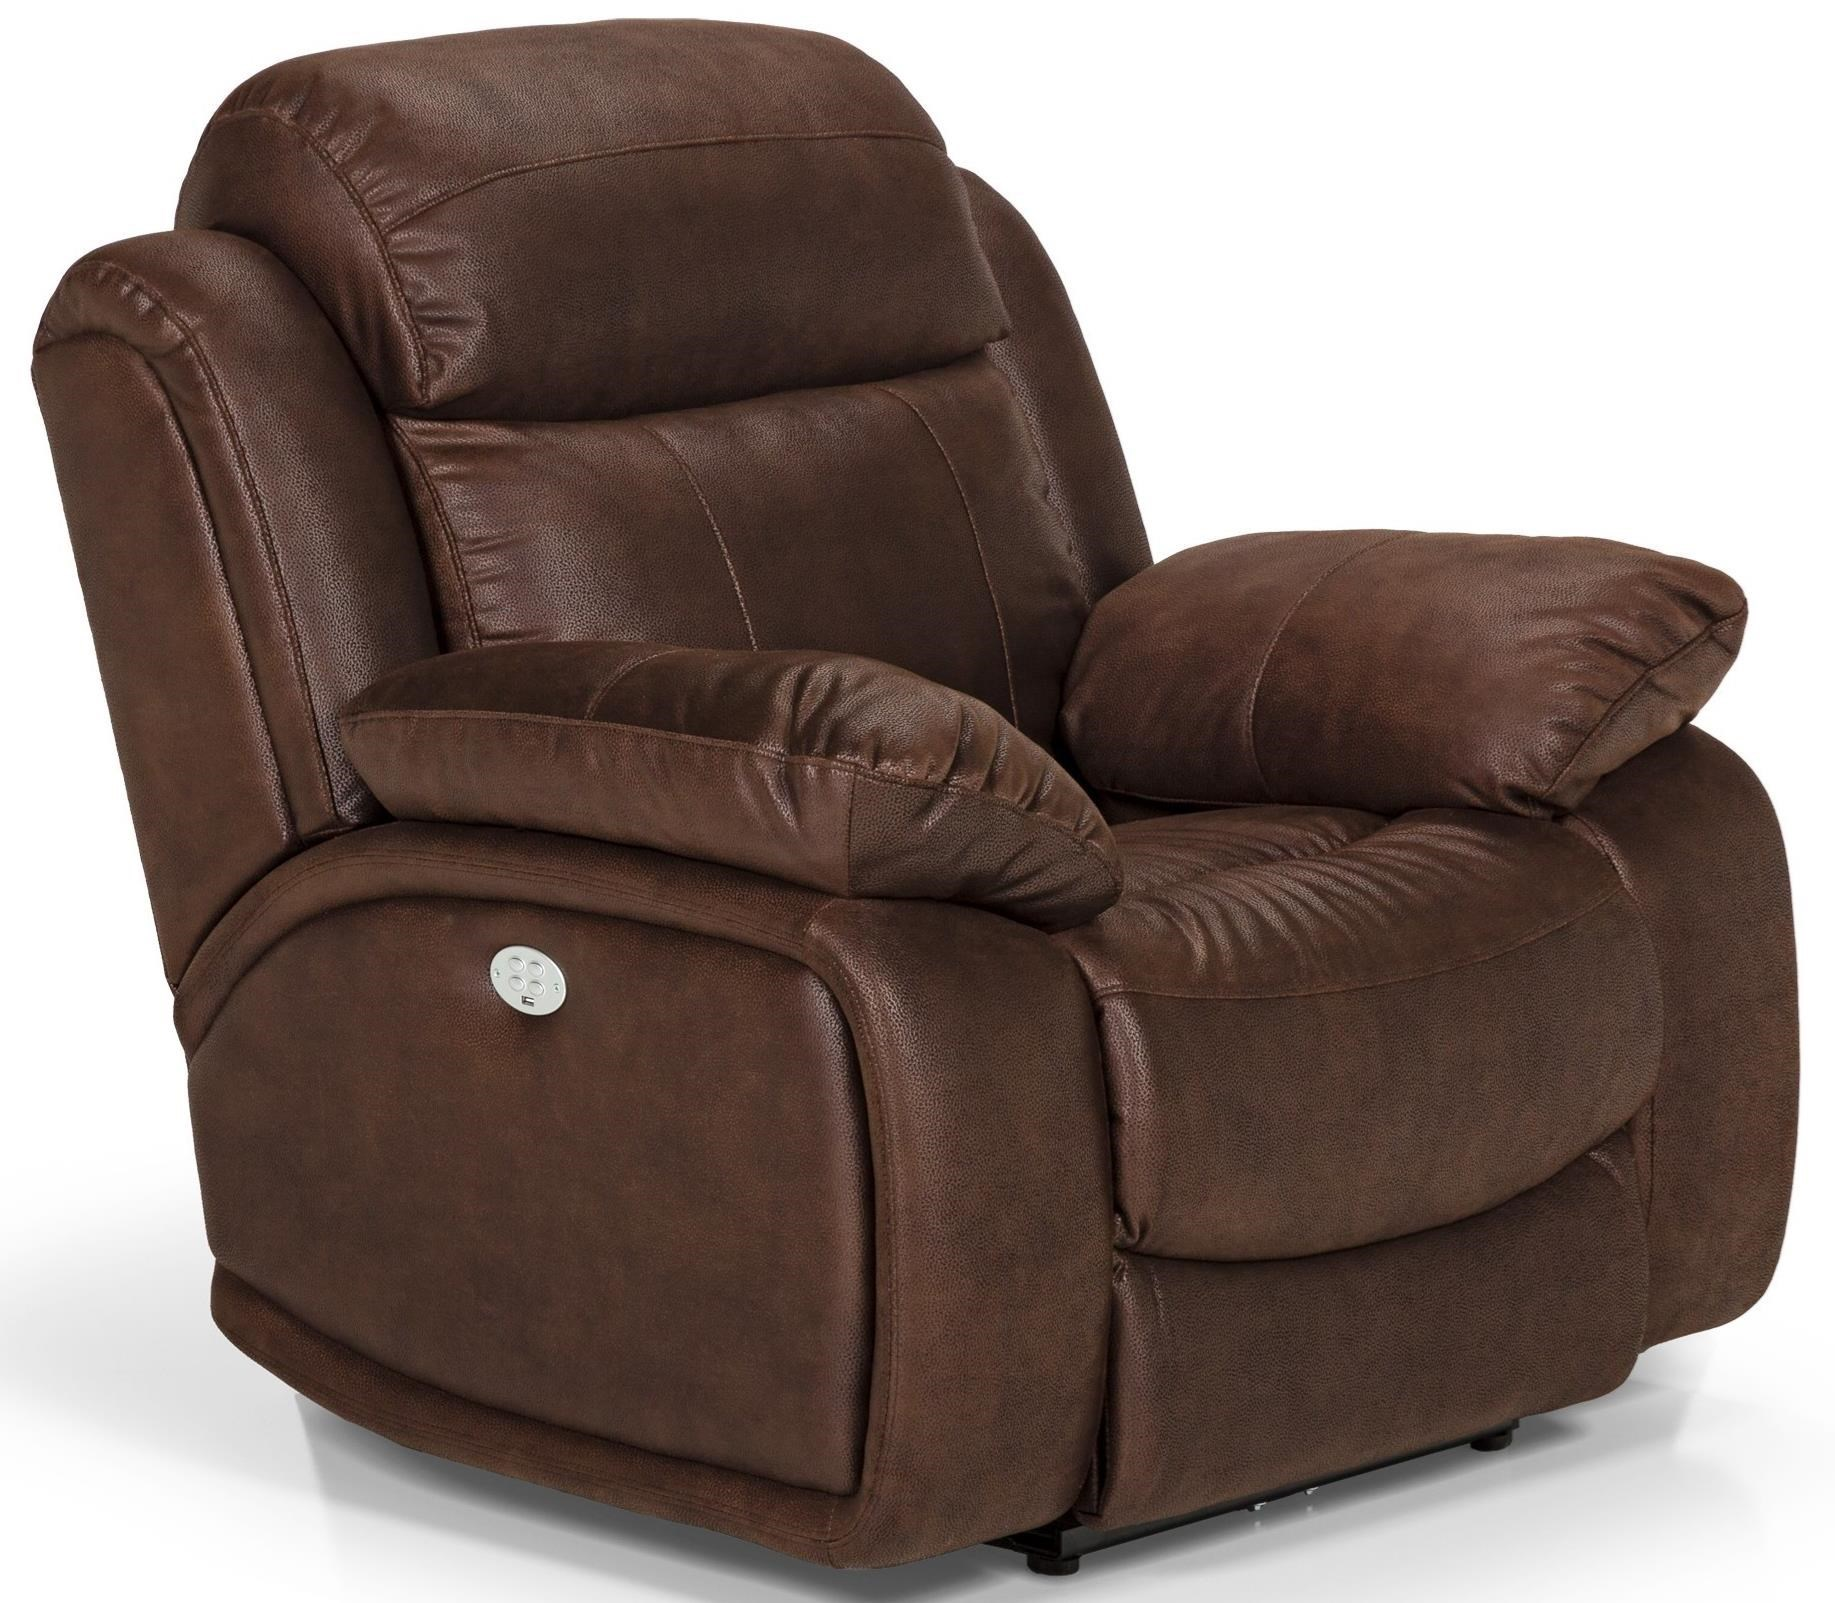 Stanton 853 Power Reclining Chair With Power Headrest